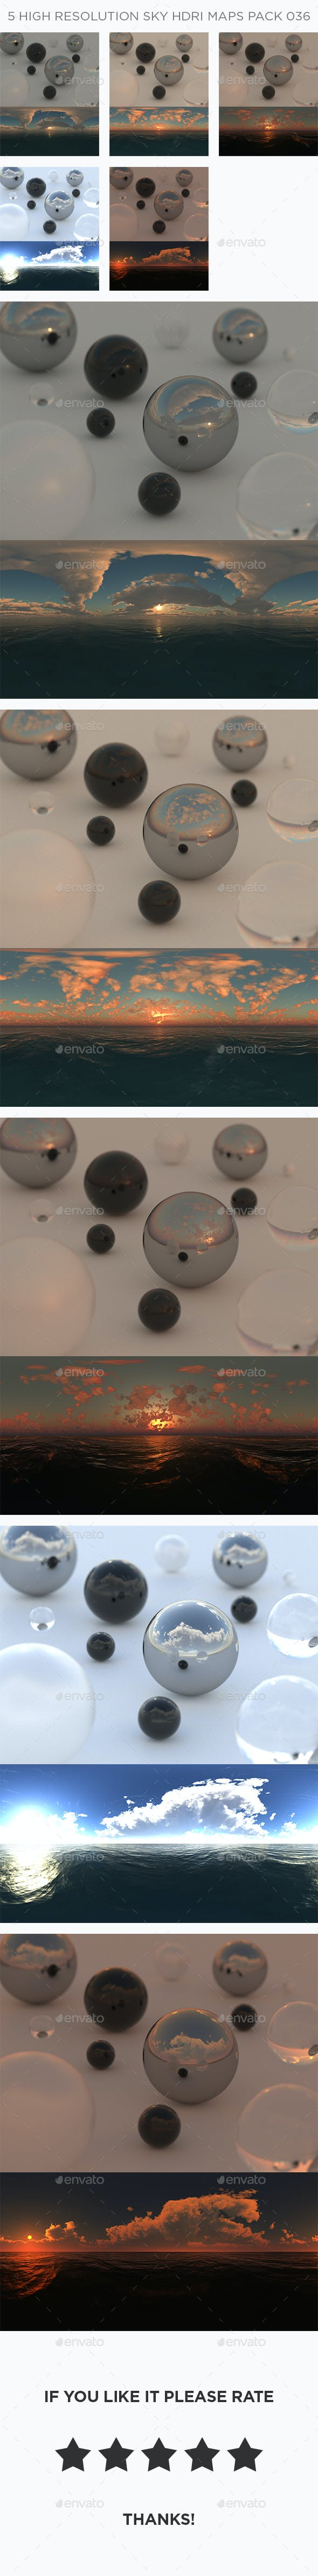 5 High Resolution Sky HDRi Maps Pack 036 - 3DOcean Item for Sale